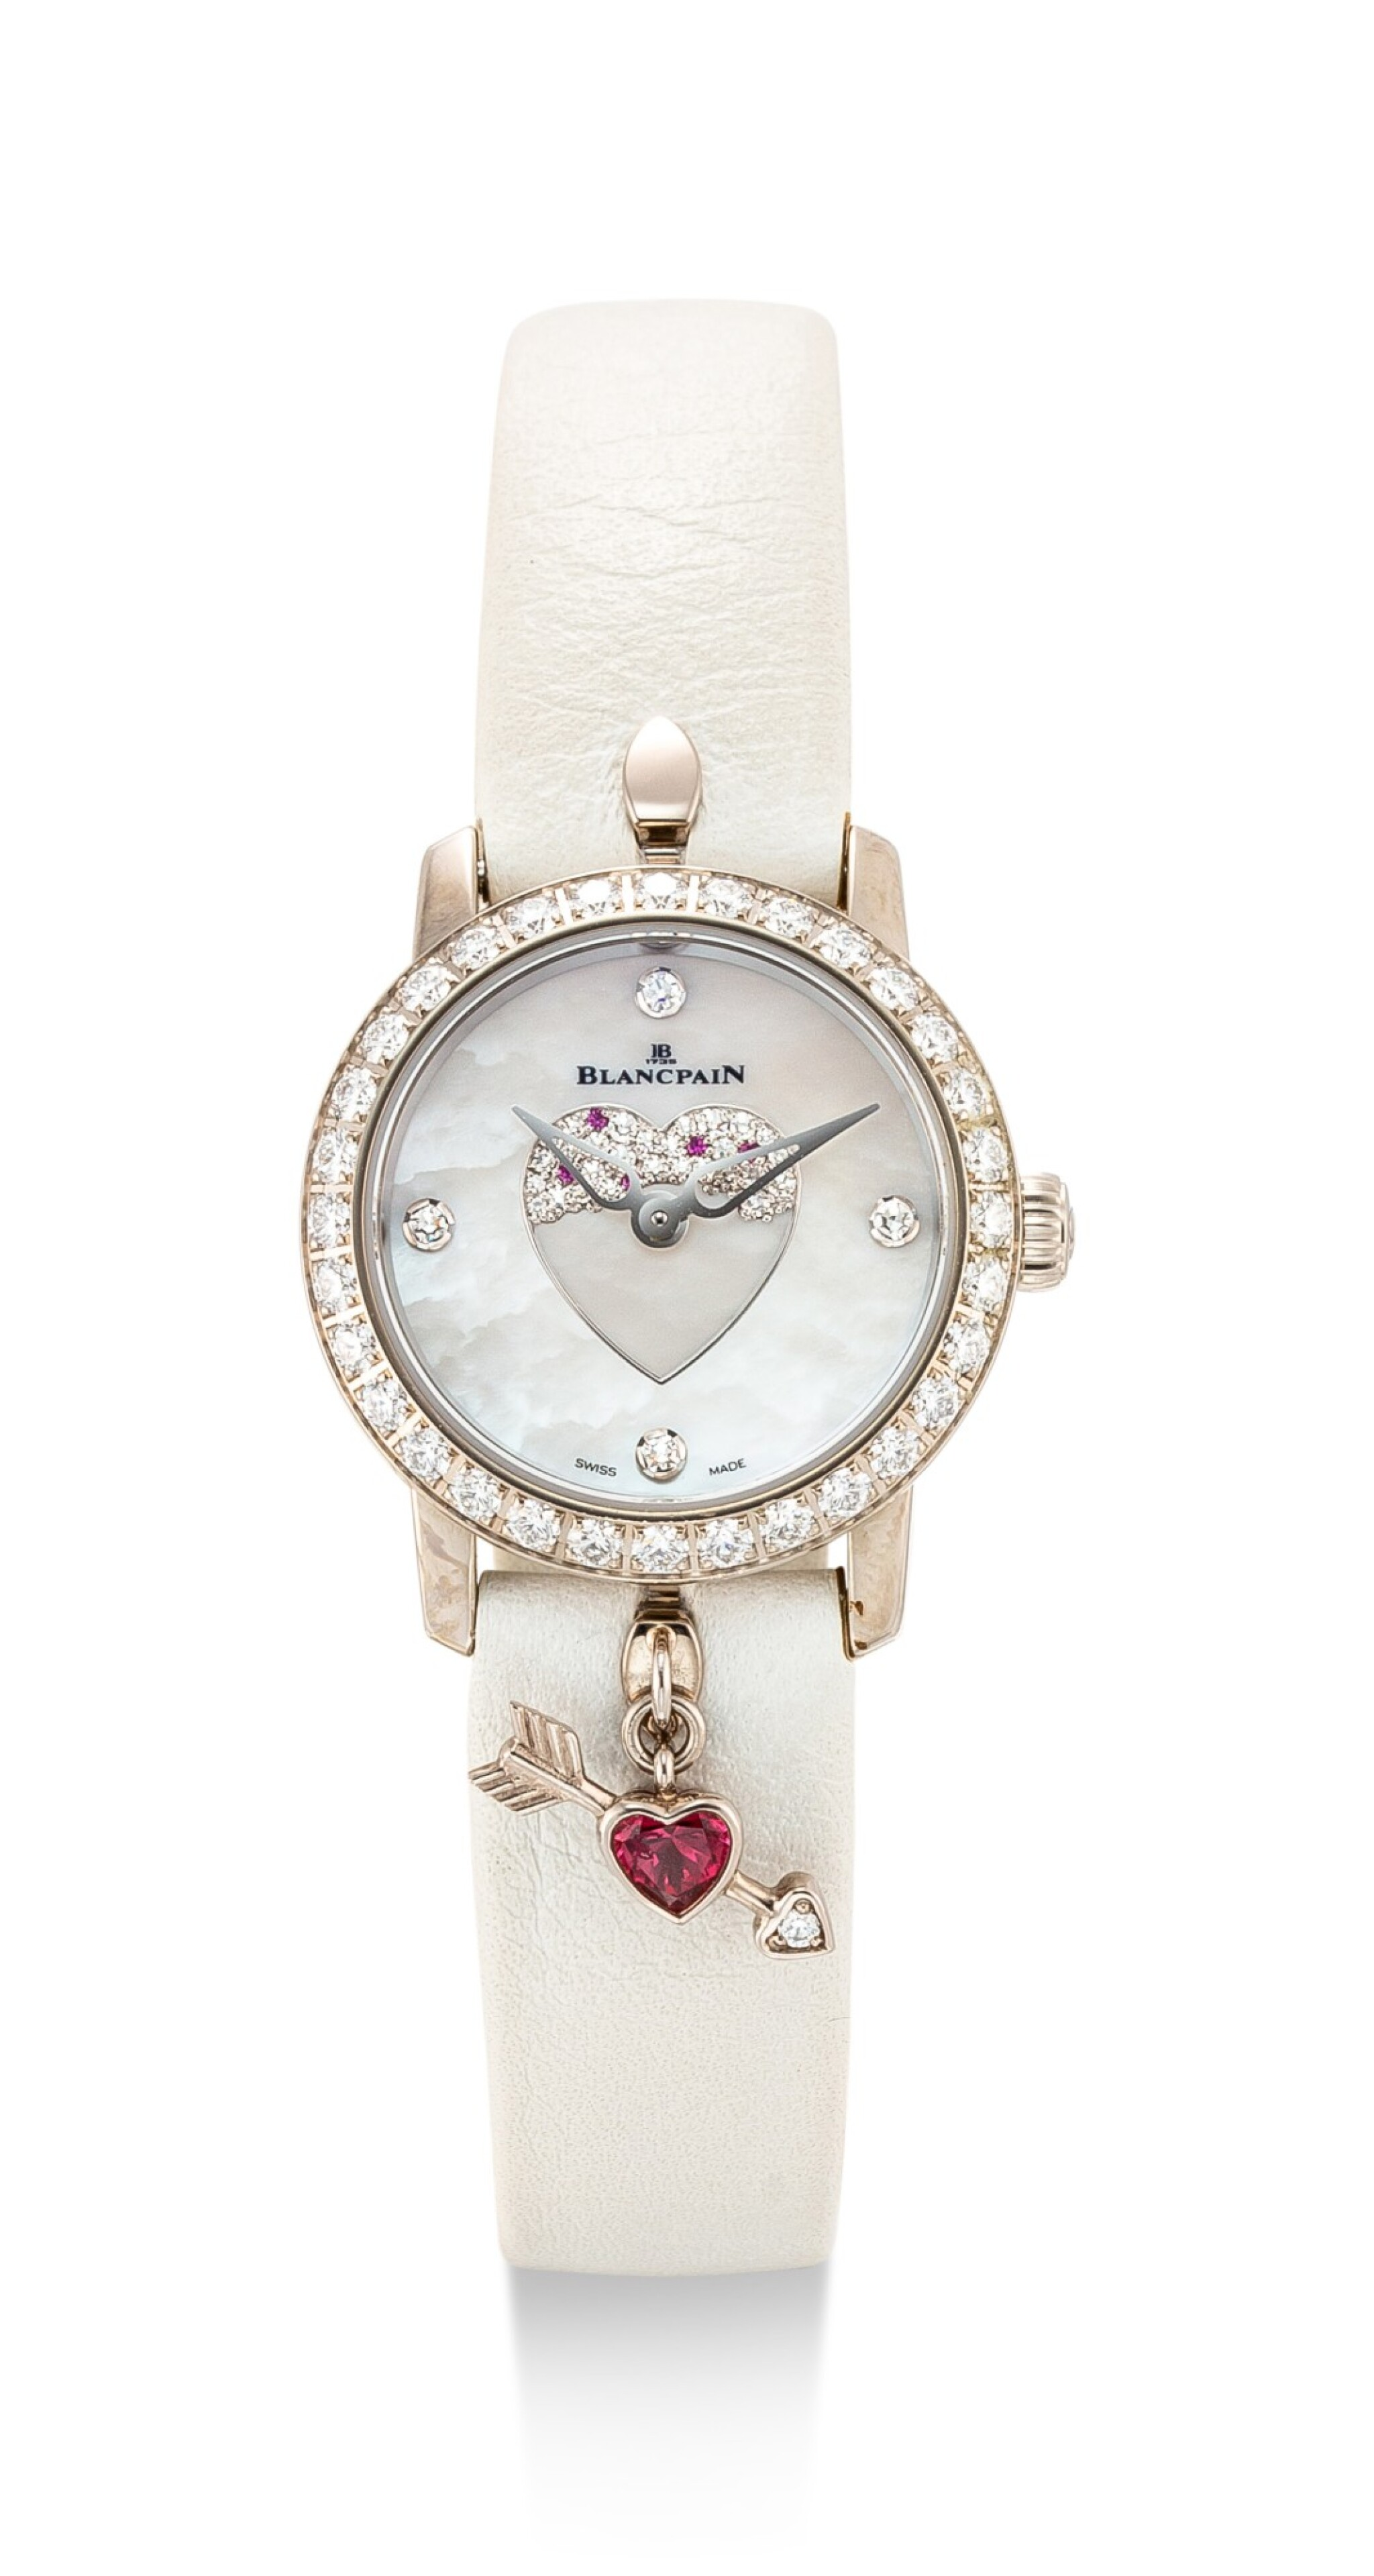 BLANCPAIN | REFERENCE 0063F-1954-63A, A LIMITED EDITION WHITE GOLD, DIAMOND AND RUBY-SET WRISTWATCH WITH MOTHER-OF-PEARL DIAL, CIRCA 2016